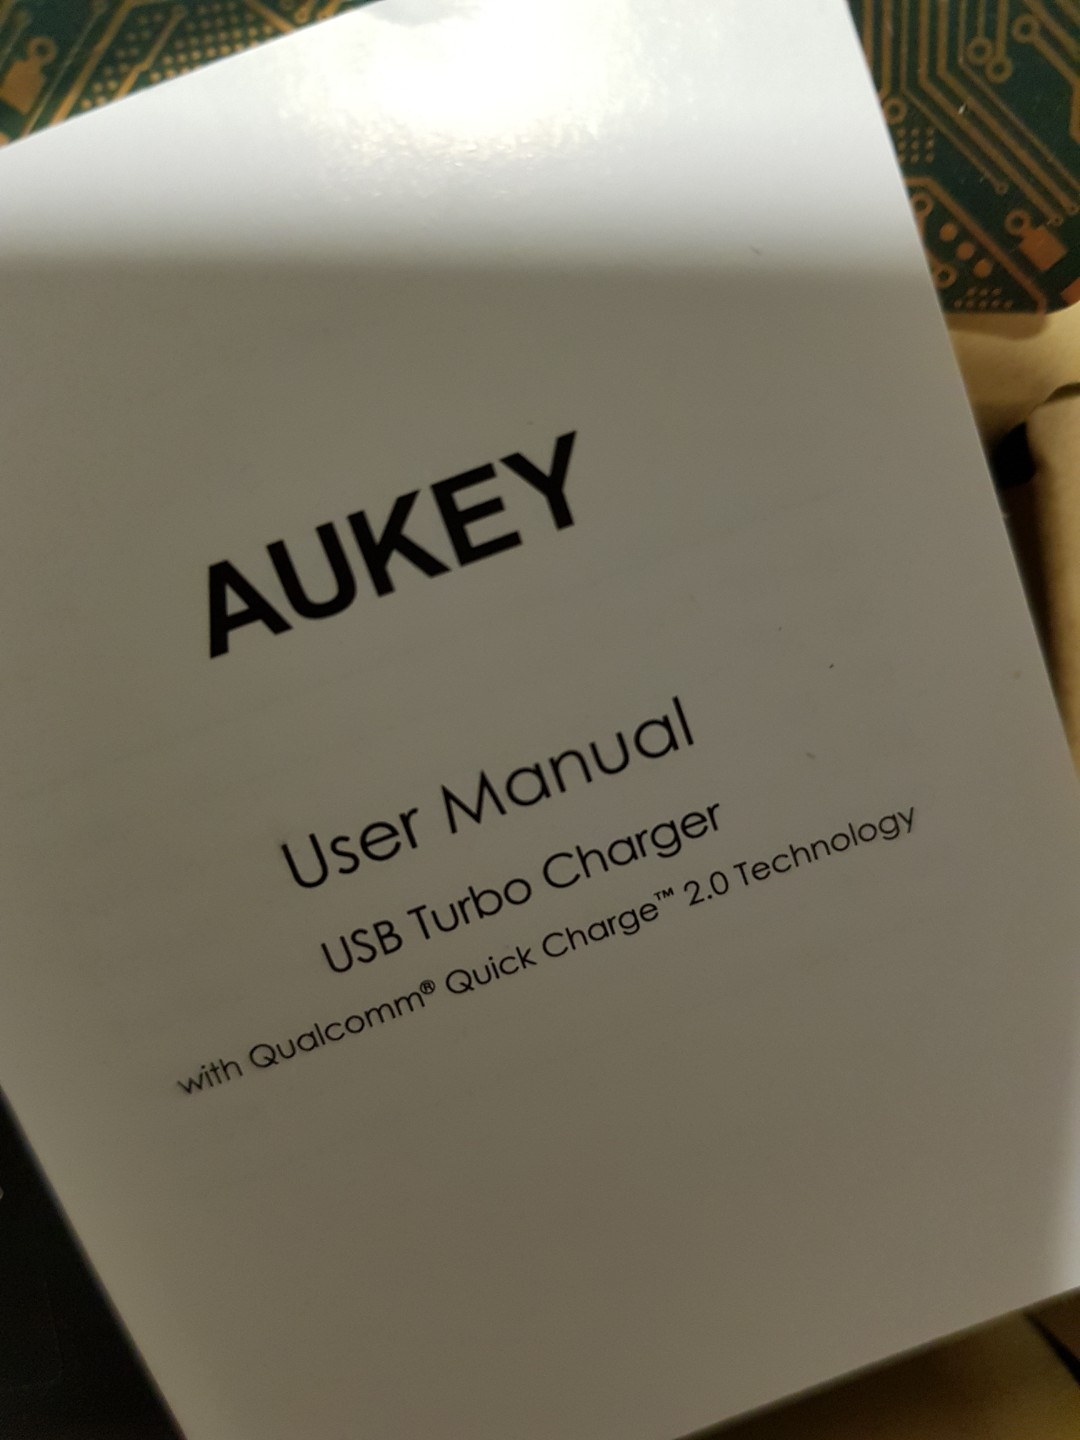 Aukey Usb Turbo Charger Quick Charge 20 Mobiles Tablets Mobile Zola Thunder 2q Qualcomm 30 2 Outputs Black Tablet Accessories Power Banks Chargers On Carousell